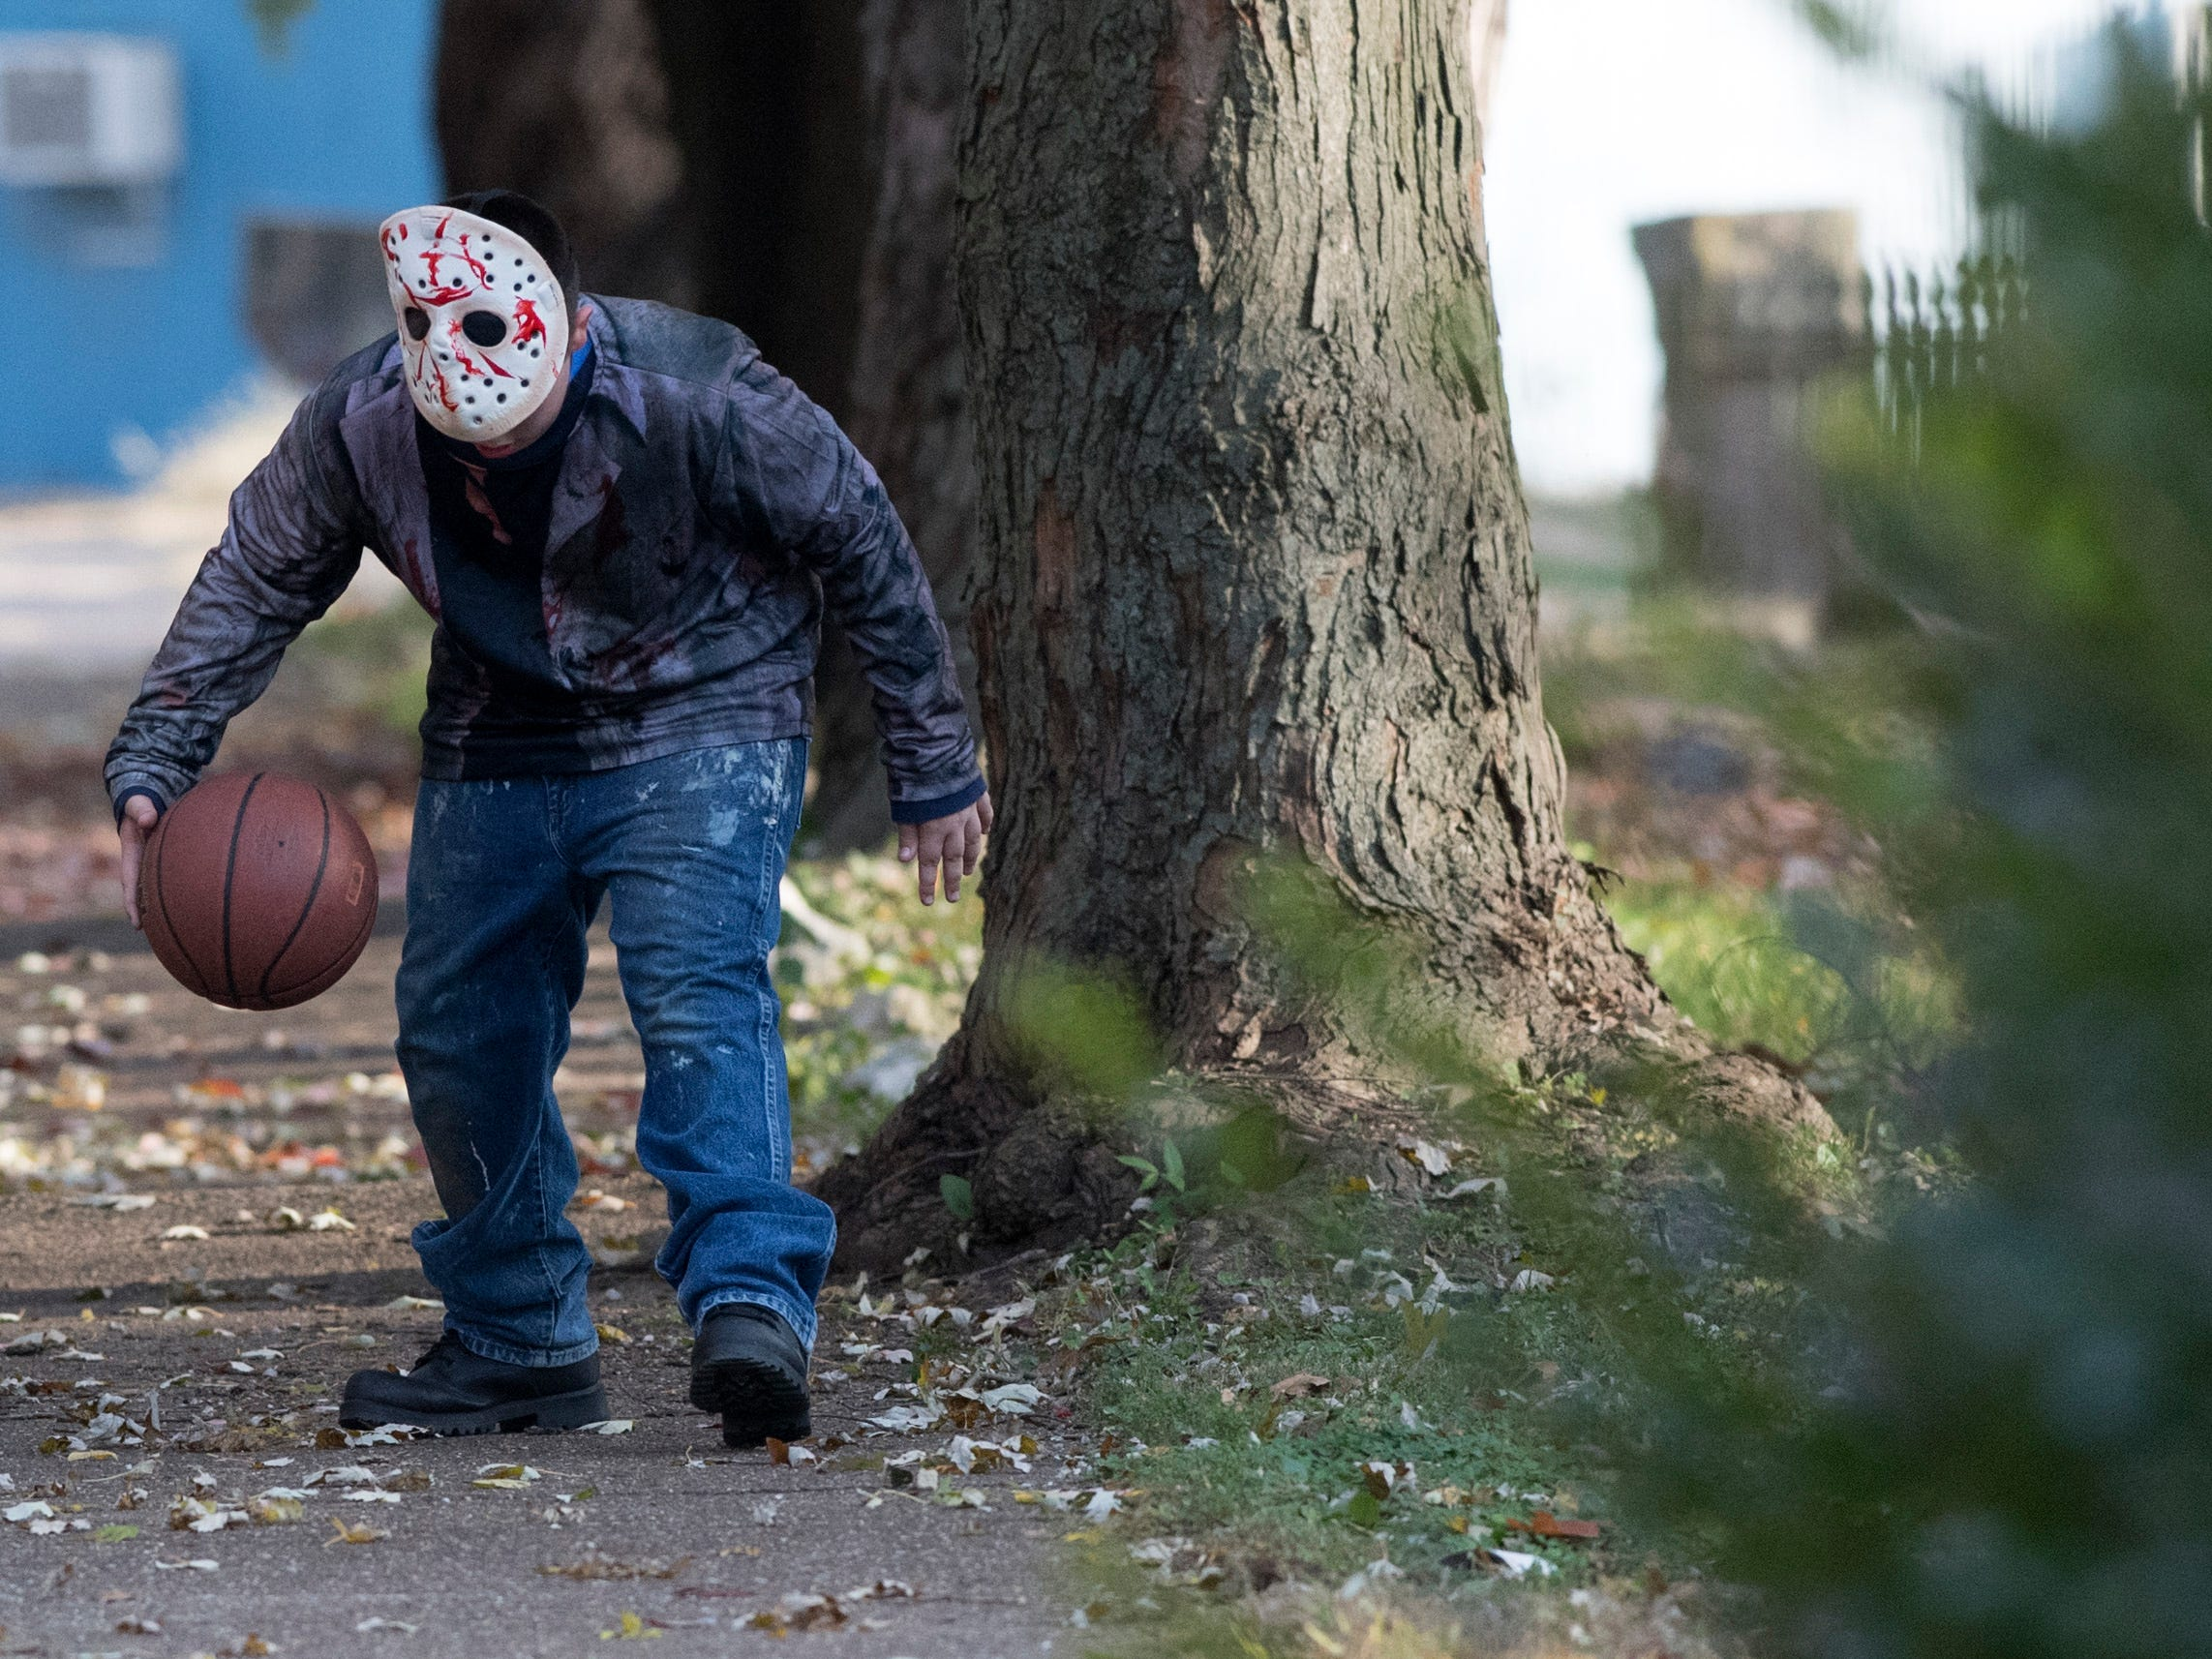 Micheal Blais dressed as Jason Voorhees dribbles a basketball before heading out to trick-or-treat, Tuesday, Oct. 30, 2018.